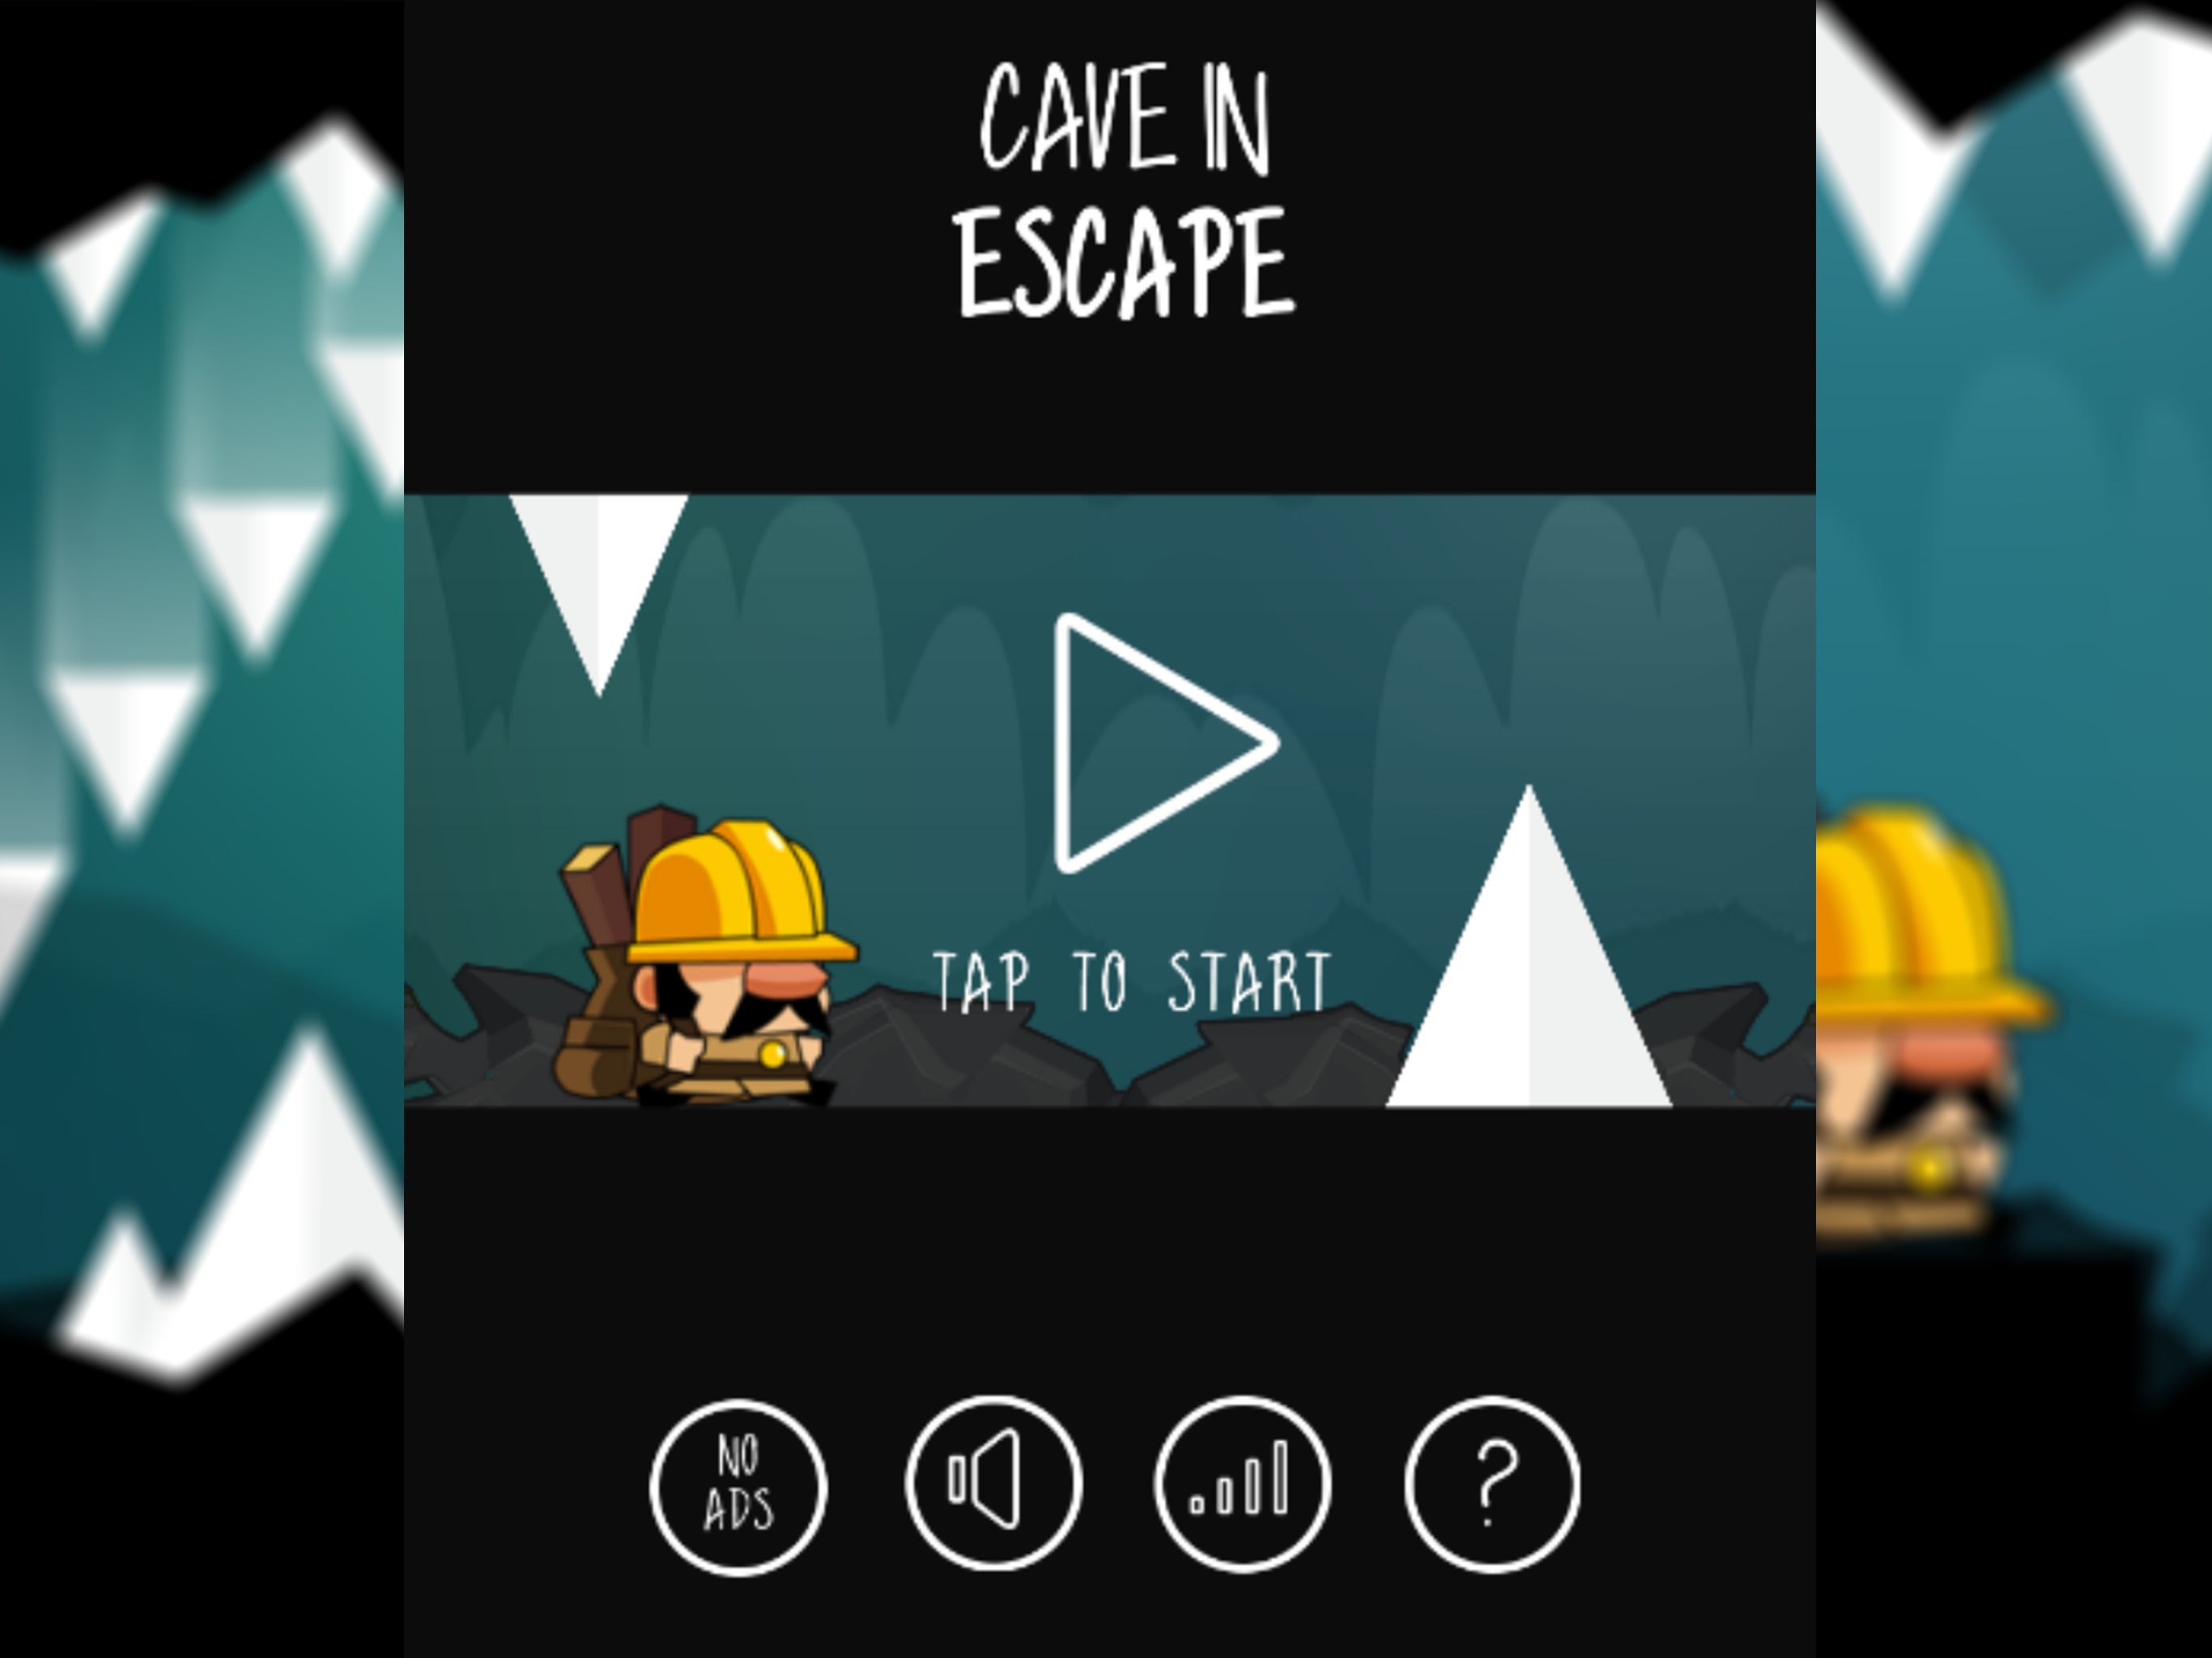 Cave In Escape